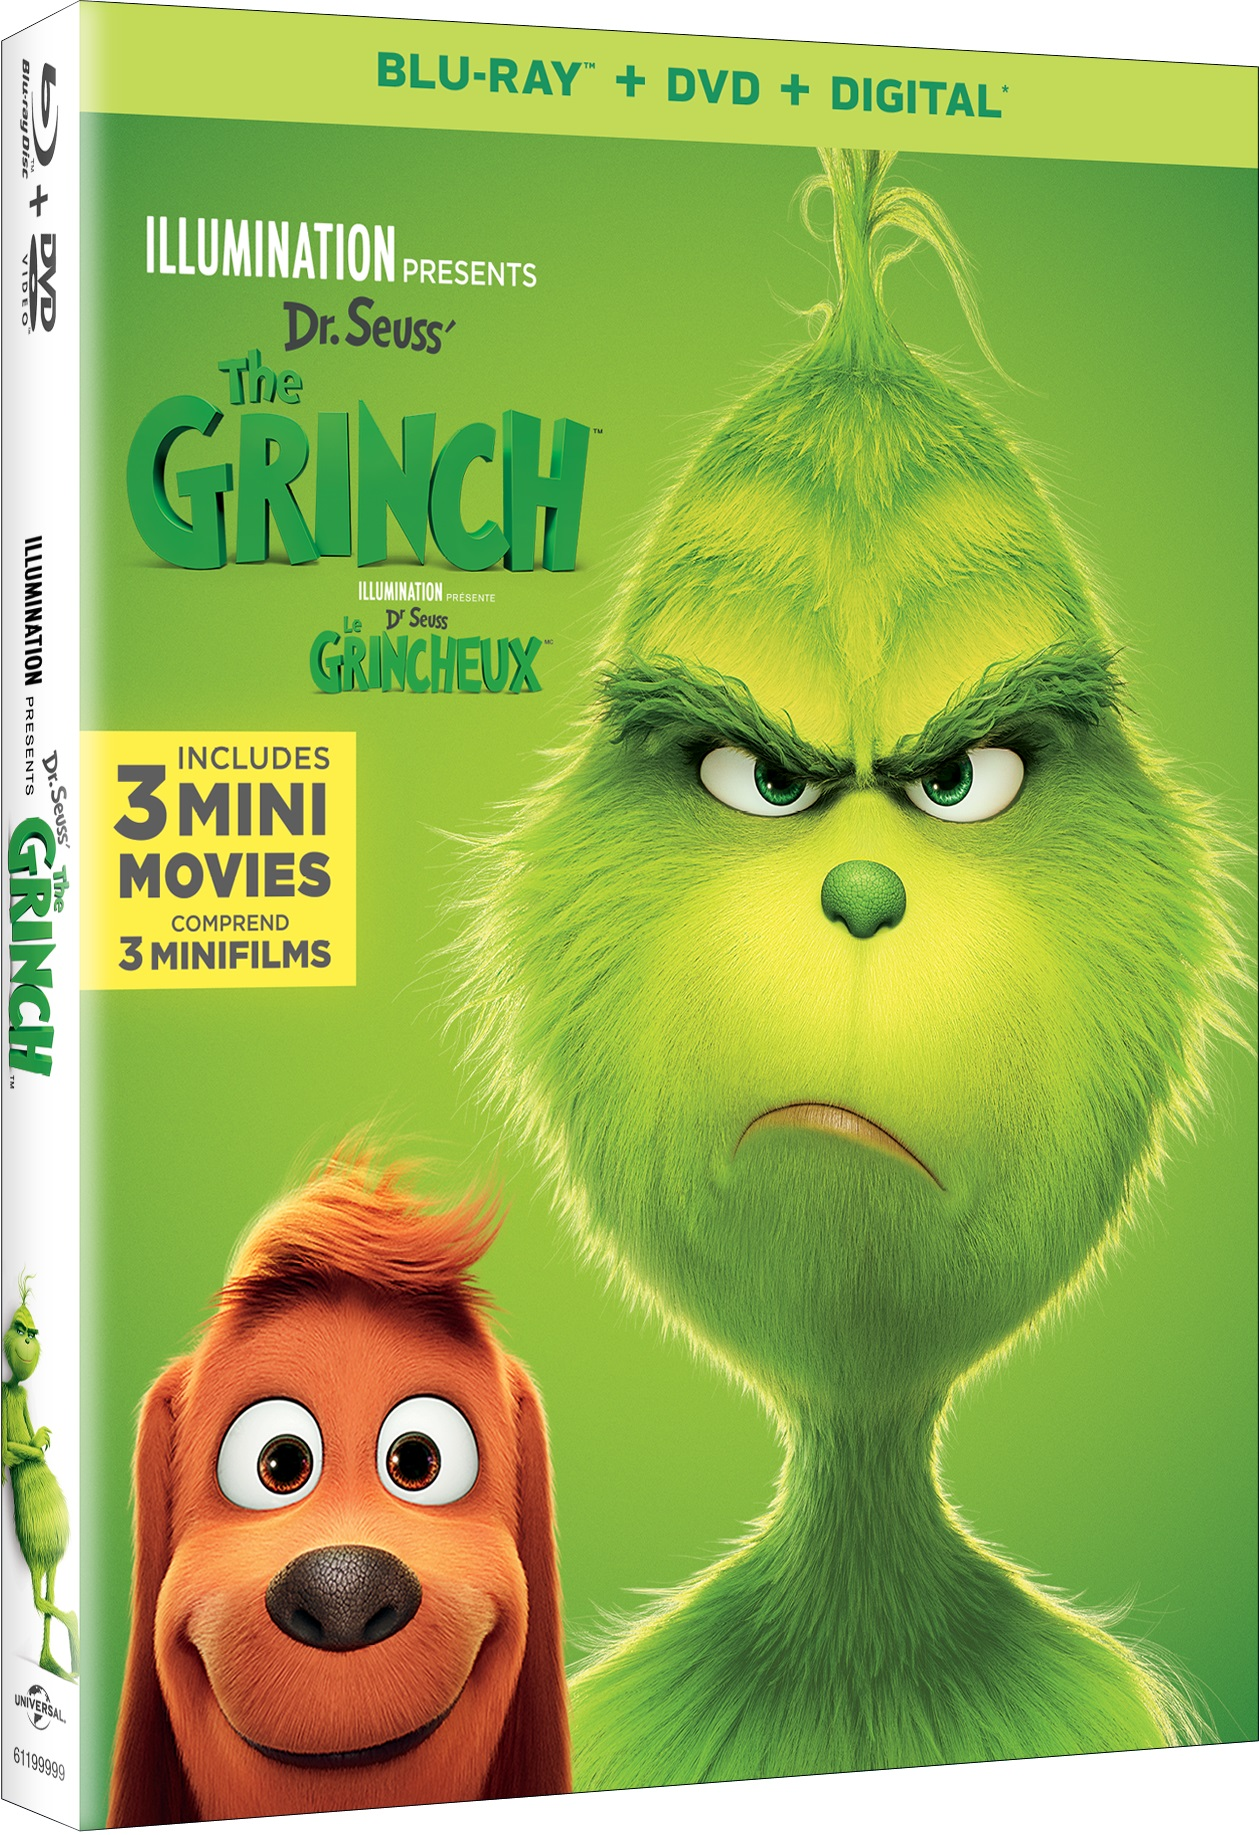 The Feedback Society Blu Ray Review The Grinch